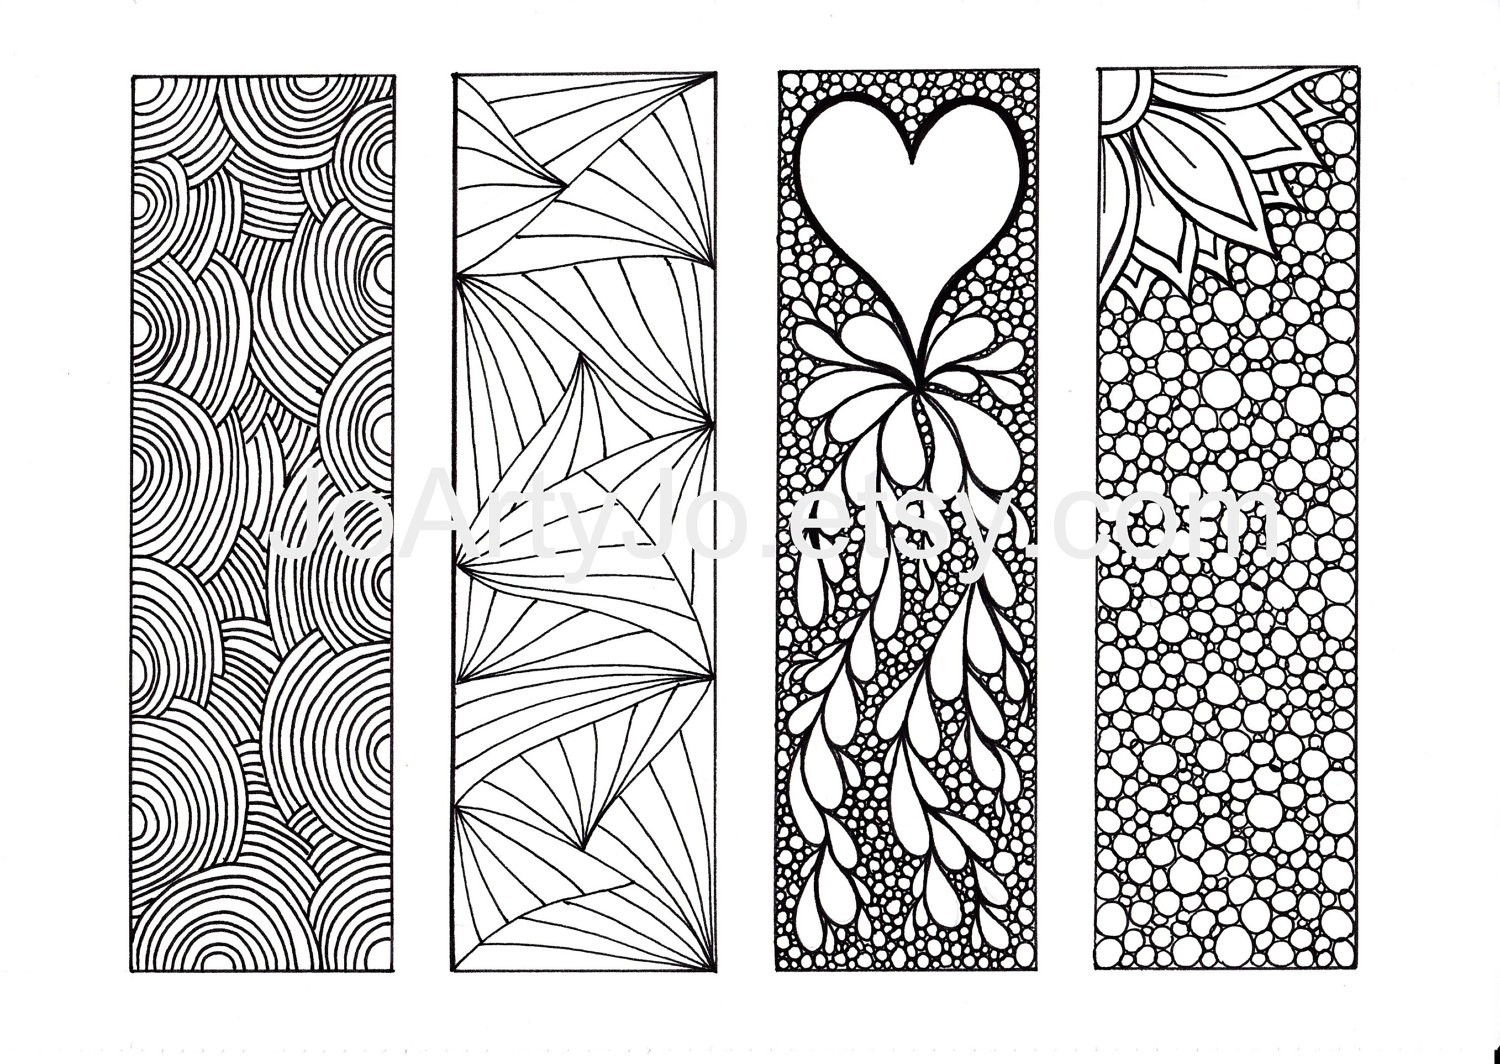 Printable Bookmarks To Color 80 Free Printable Bookmarks To Make regarding Bookmarks To Make And Print 29712